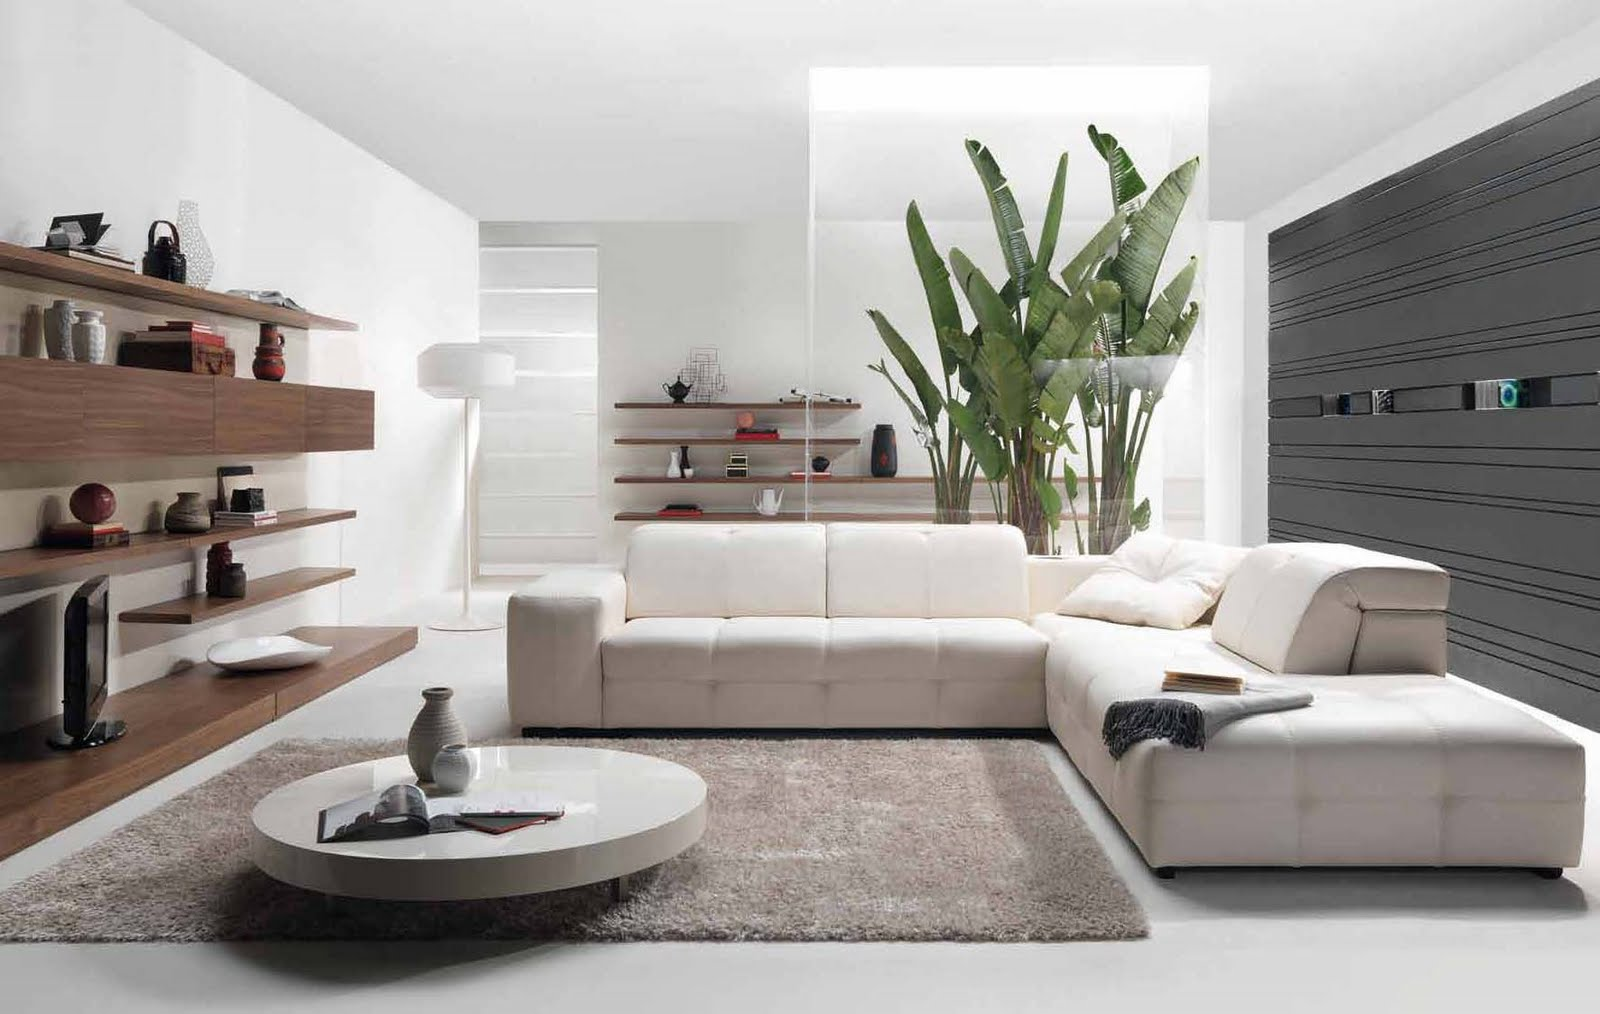 Future house design modern living room interior design for 2010 modern living room designs